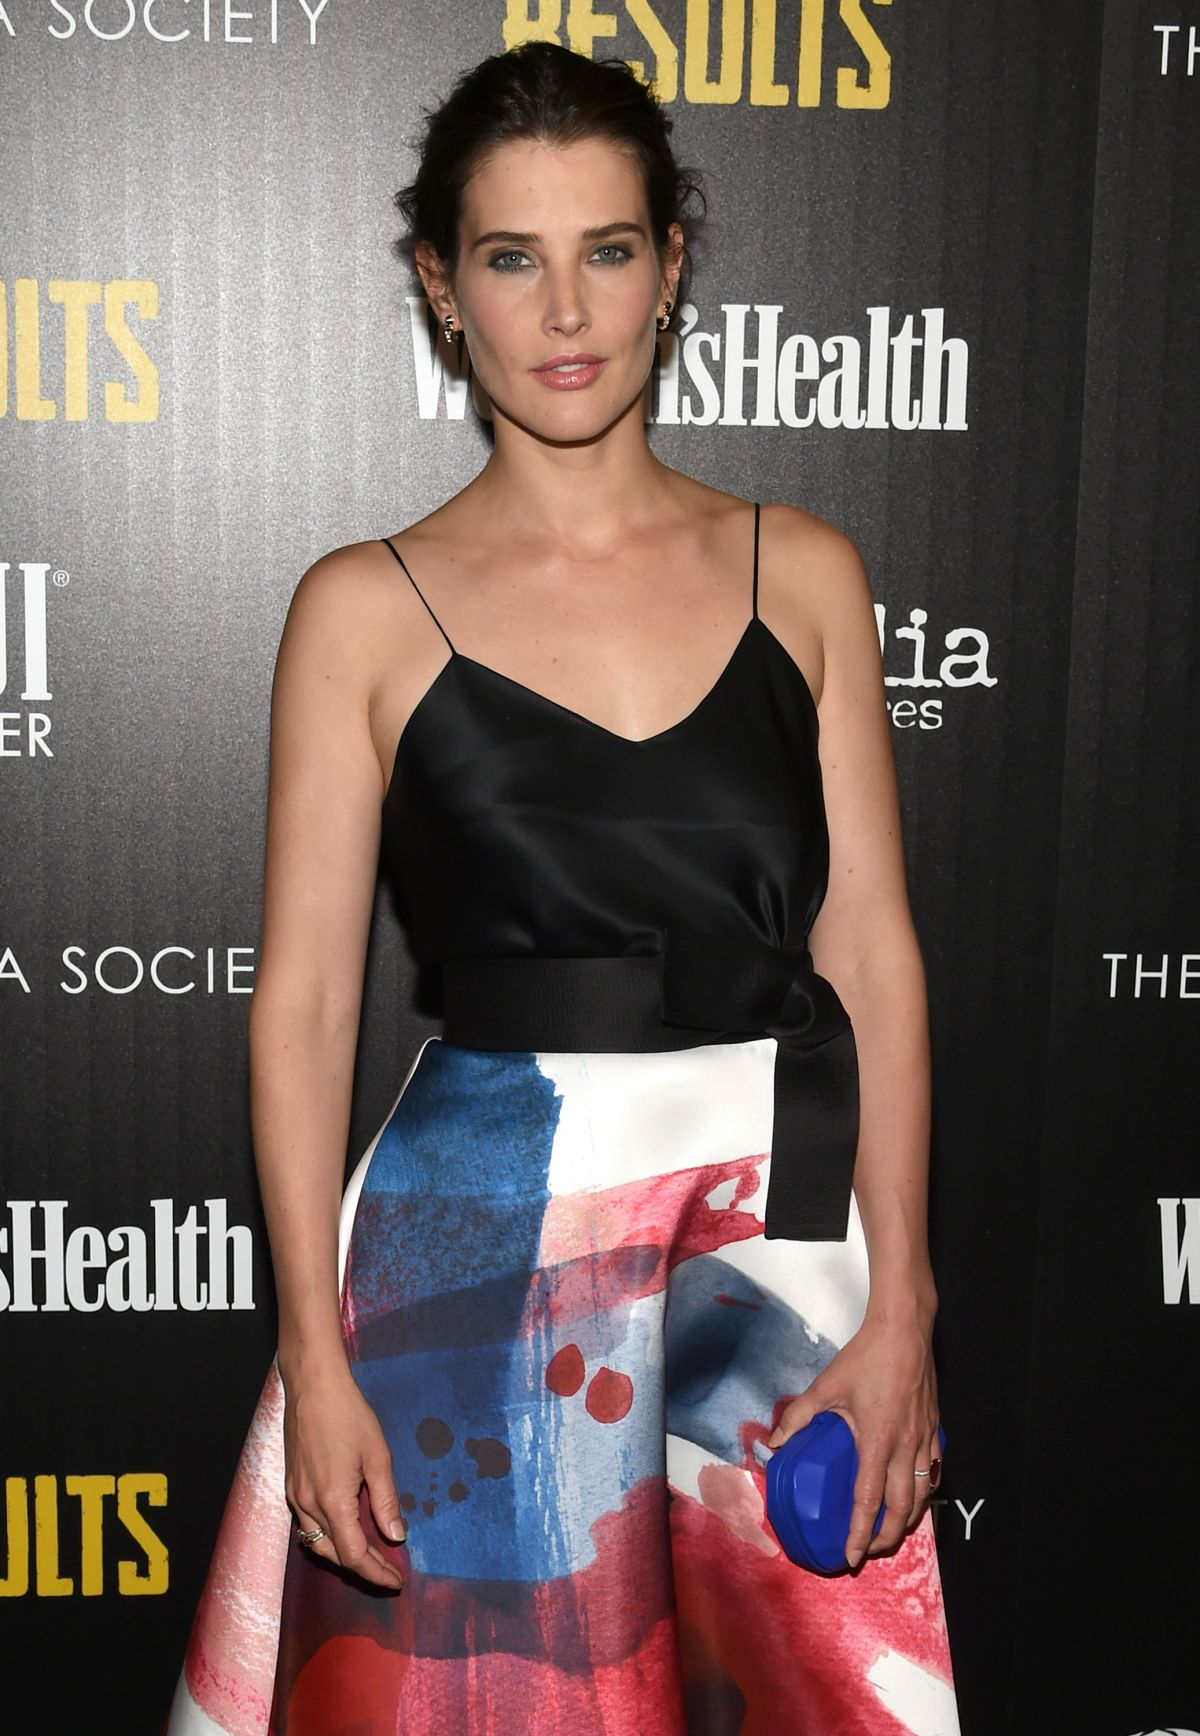 cobie-smulders-in-mantu-at-the-results-nyc-premiere